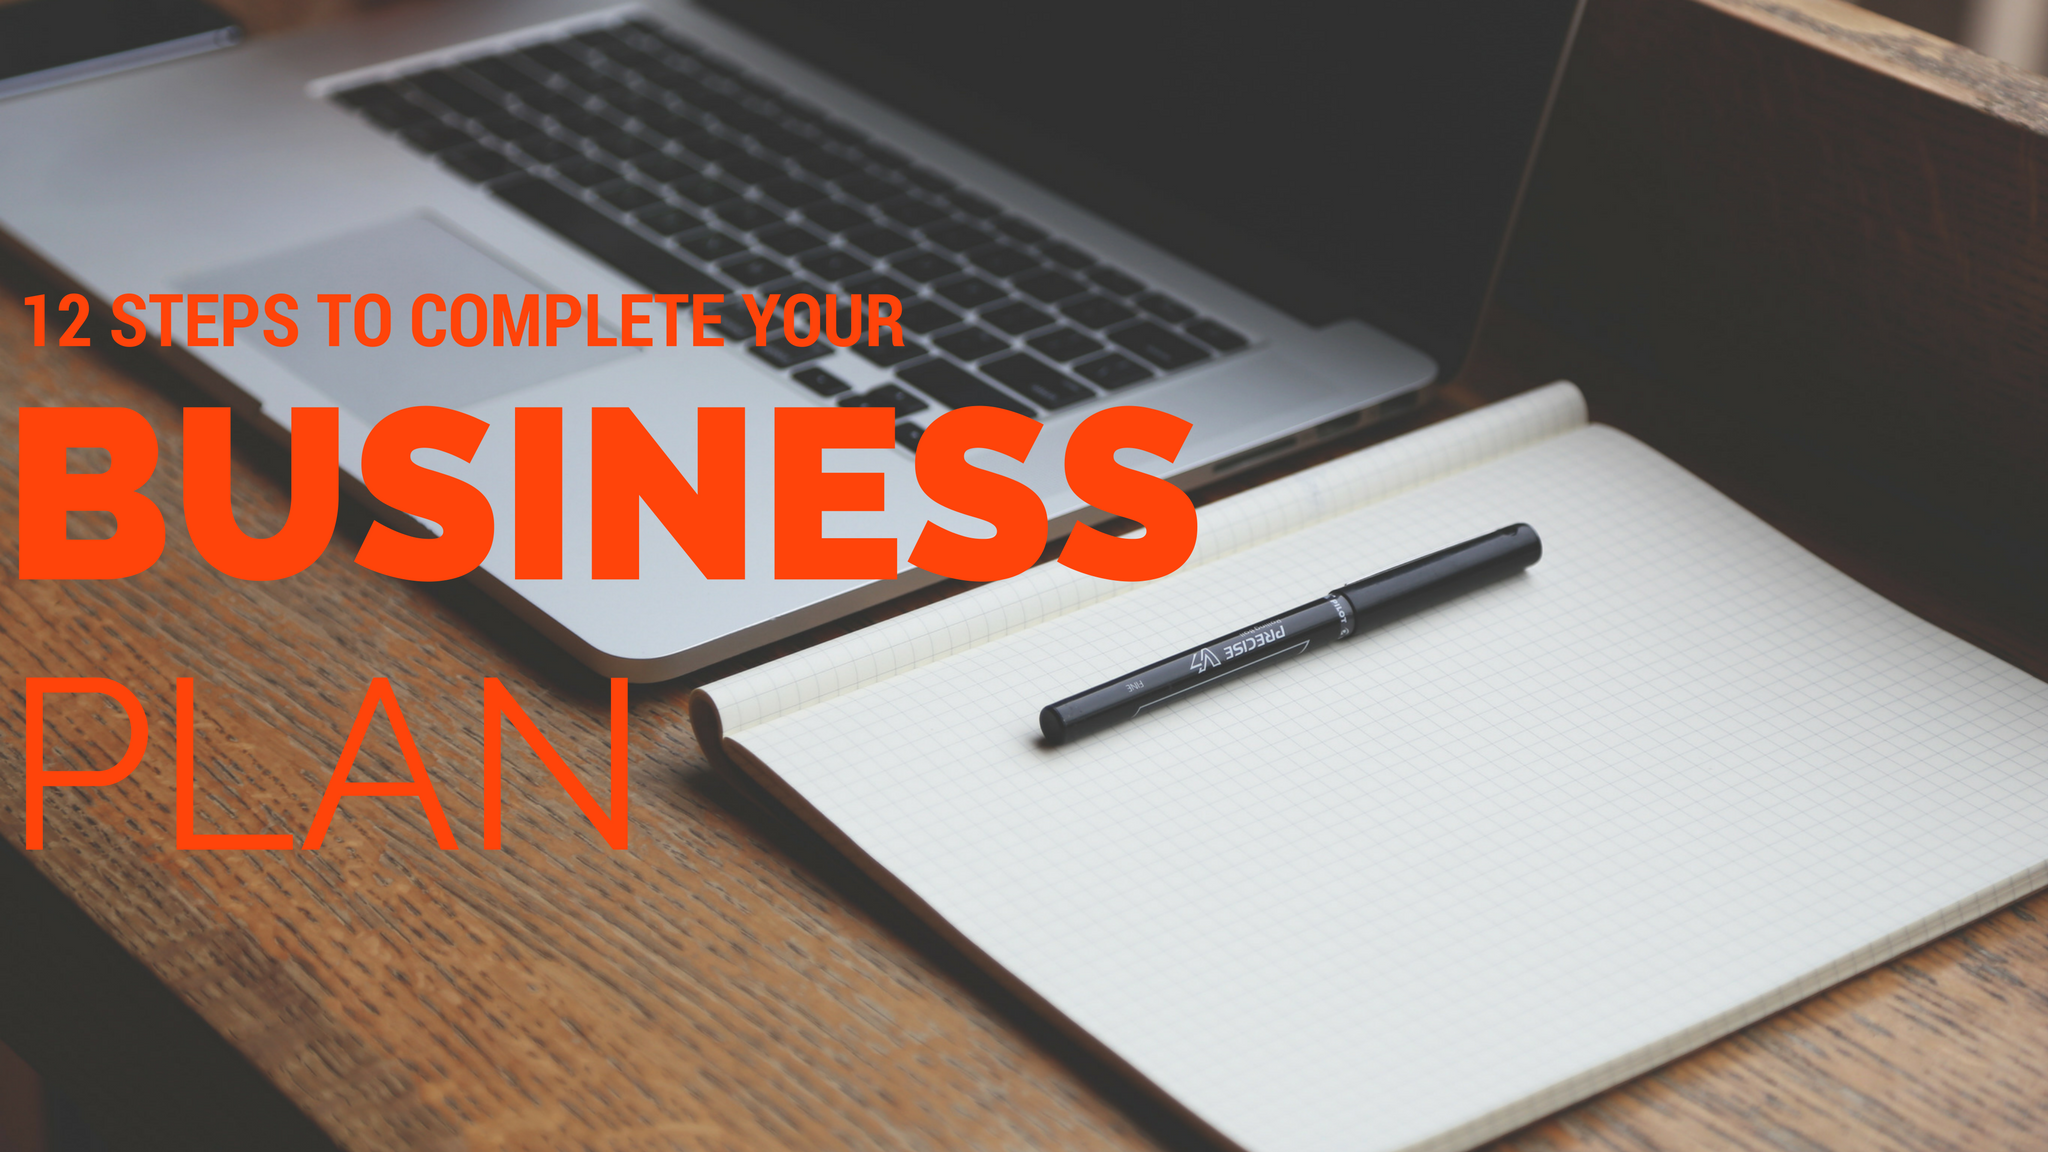 Creating a Business Plan in 12 Steps